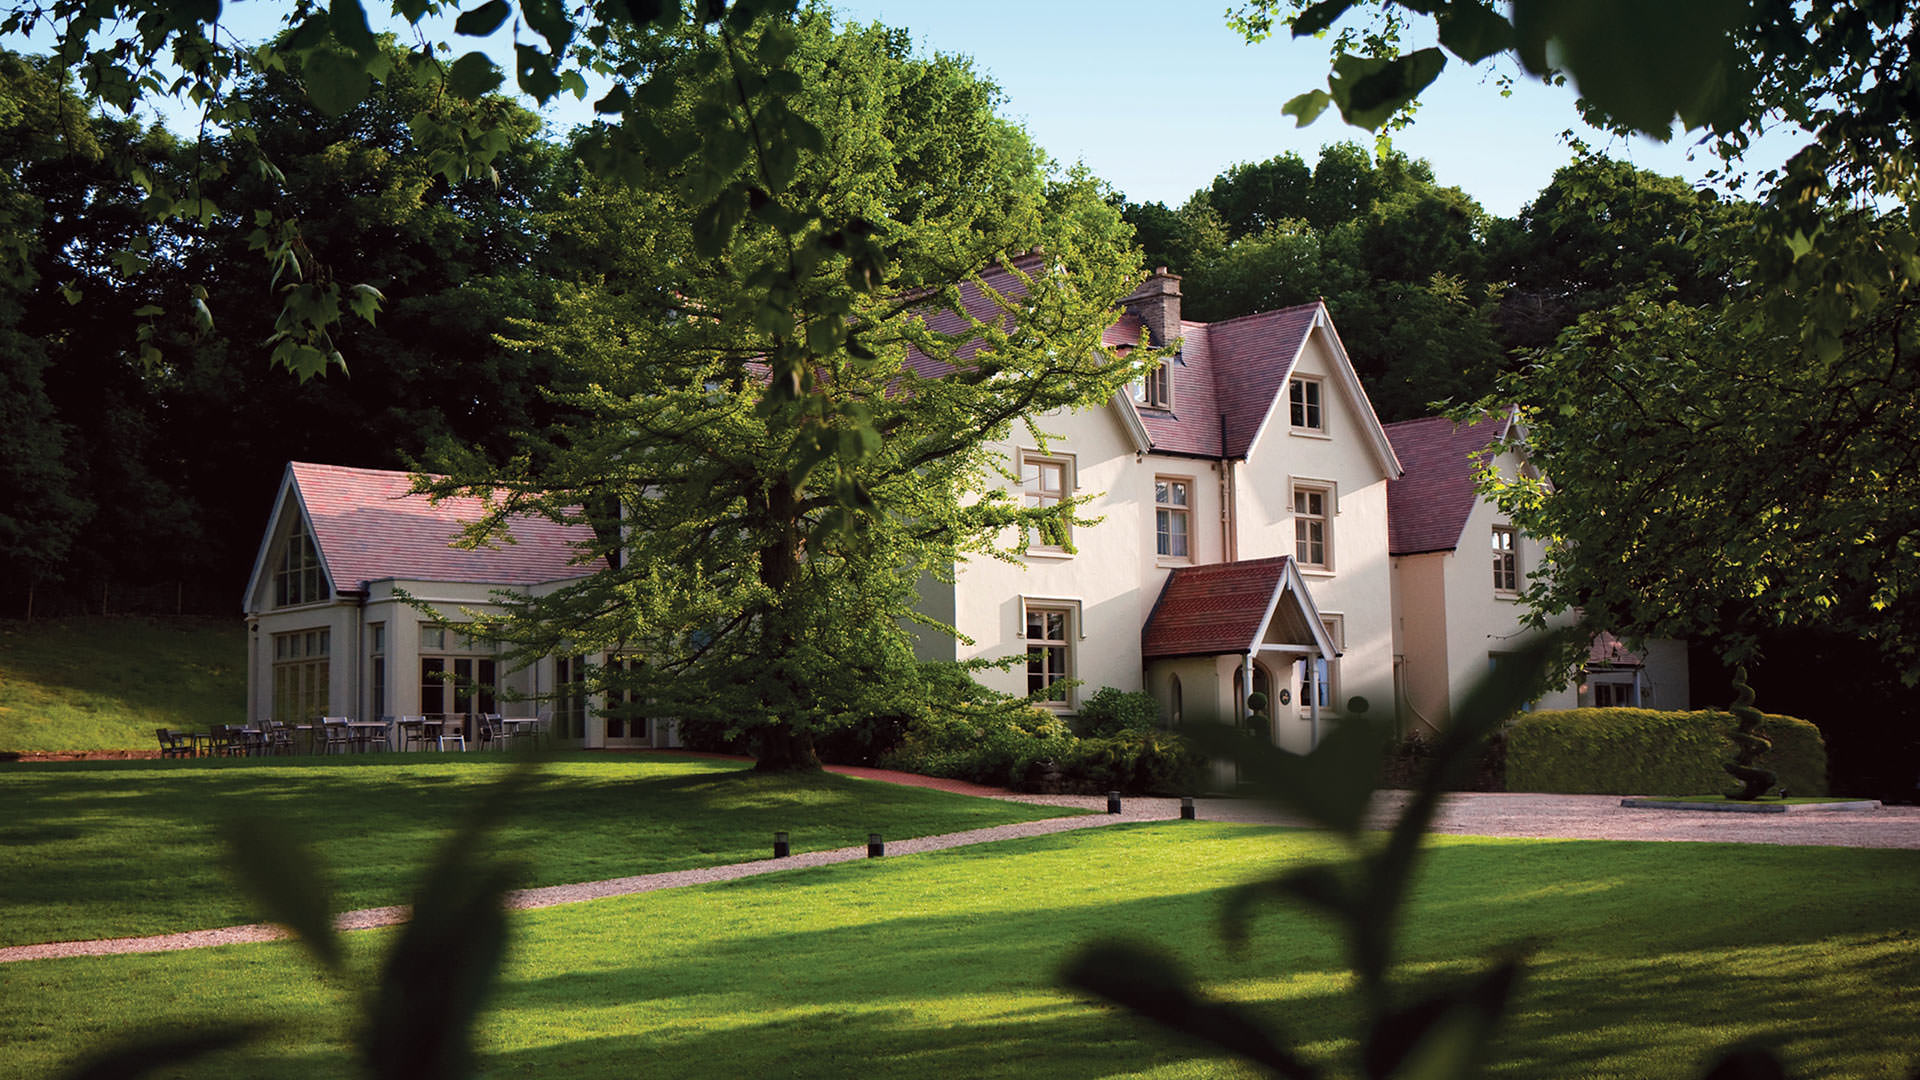 Maison talbooth hotel essex luxury country house hotels - Suffolk hotels with swimming pool ...